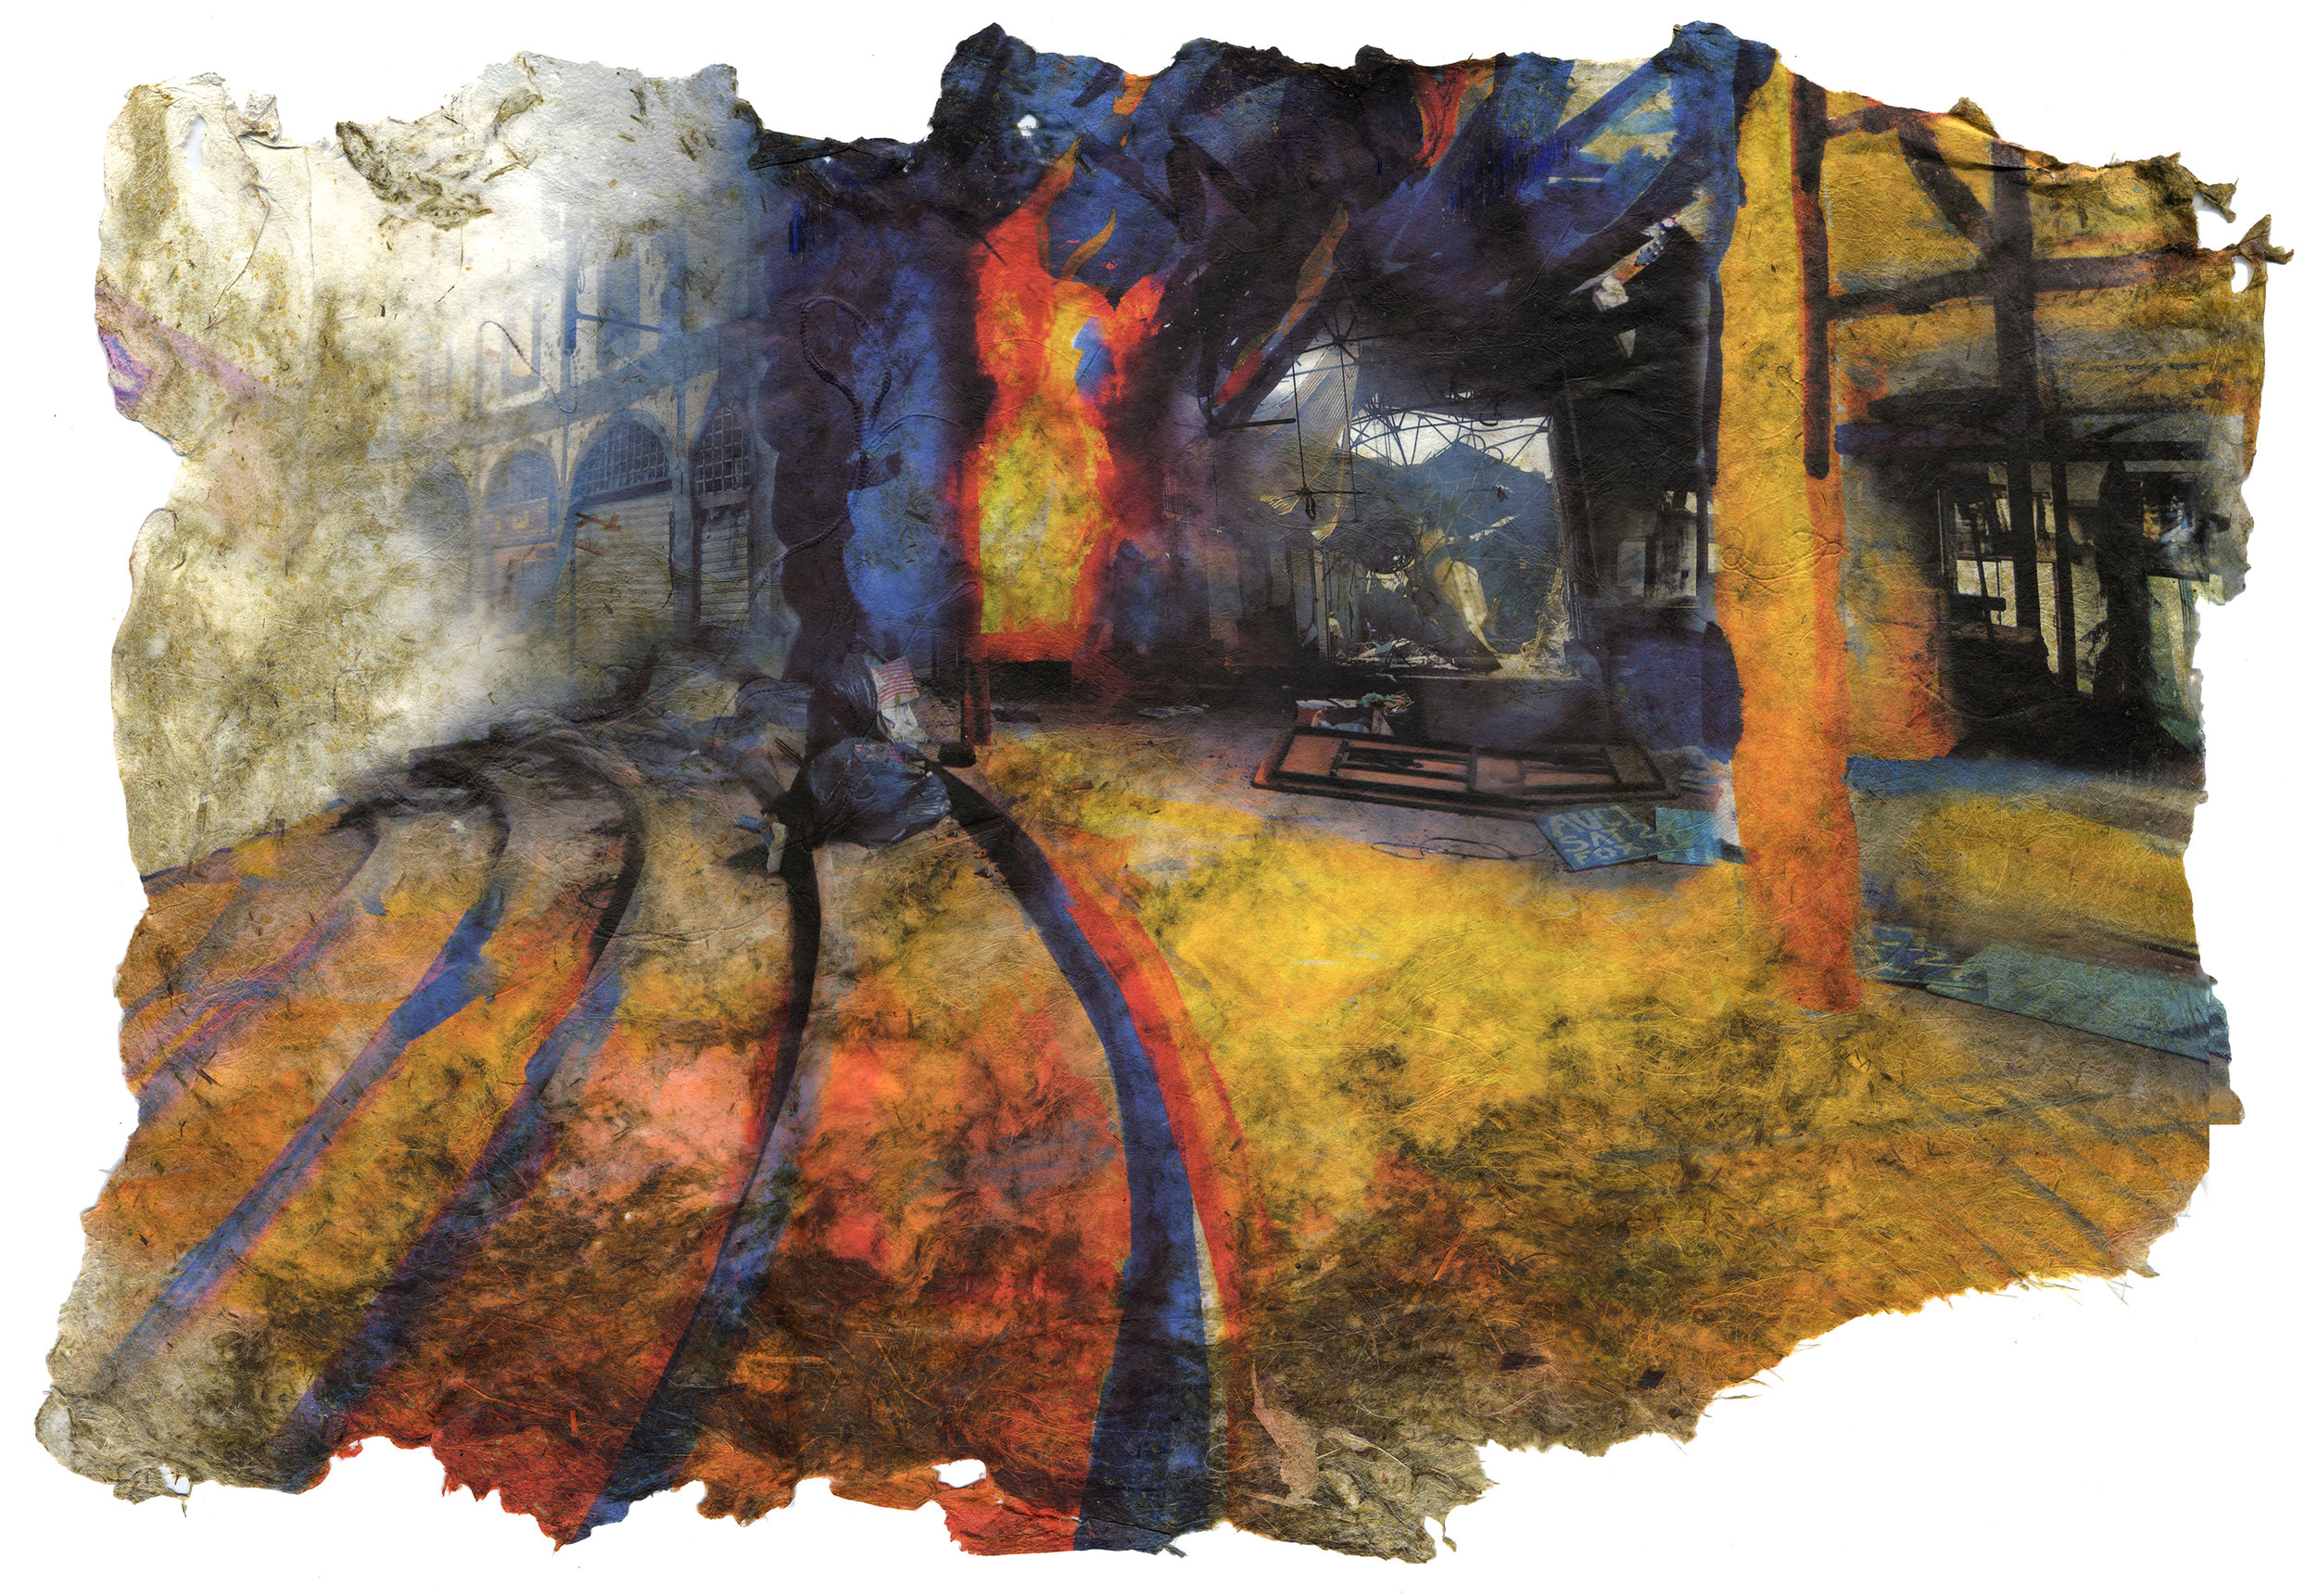 Convention Fire, 2017, Pigment print on handmade paper (cotton, daylily, hosta, bamboo, and yucca), 15 1/2 x 21 inches